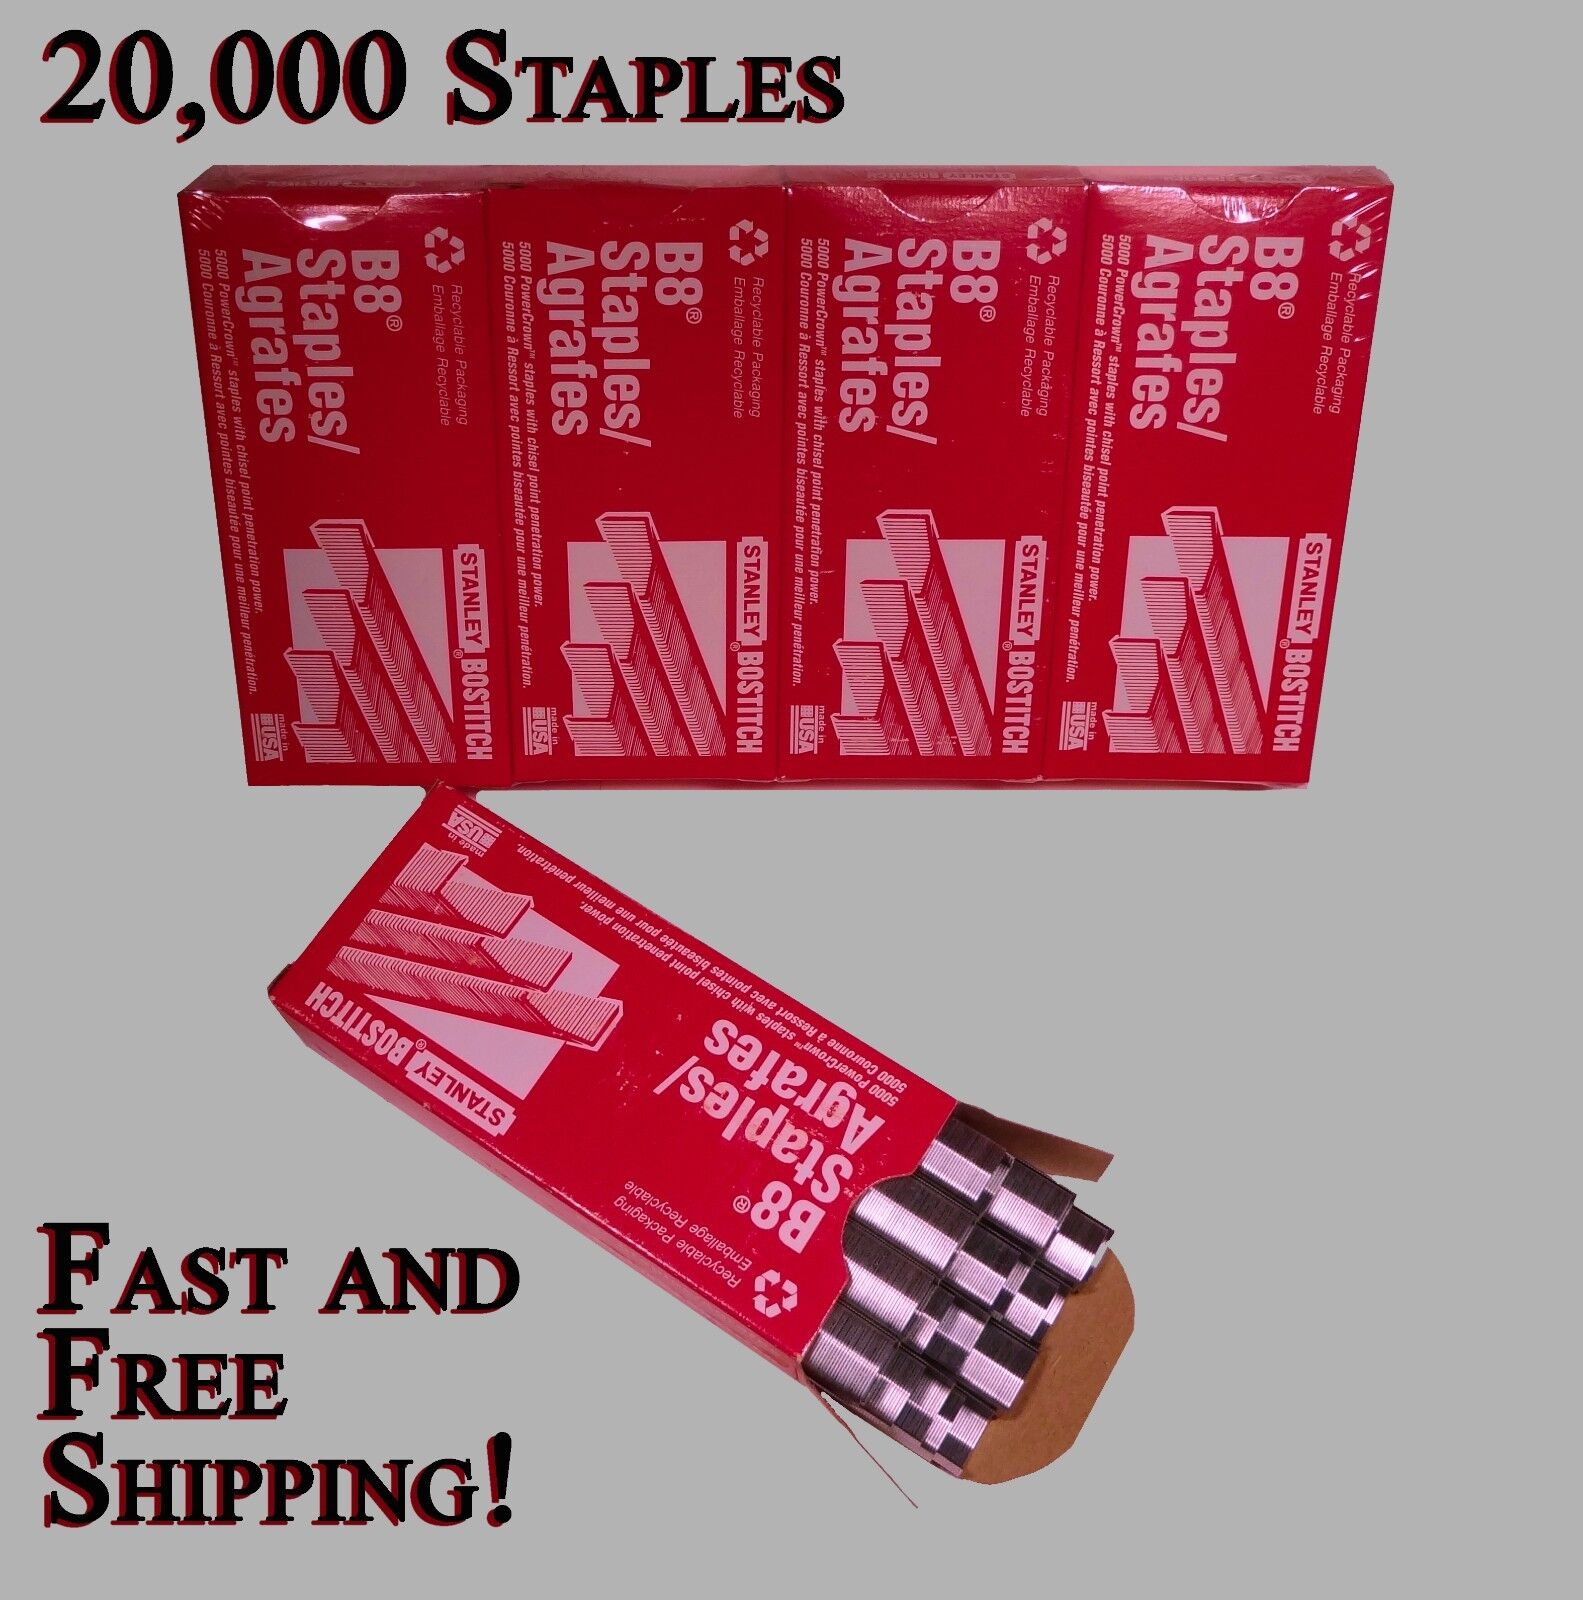 Stanley Bostitch Genuine Staples 1/4 B8 20,000